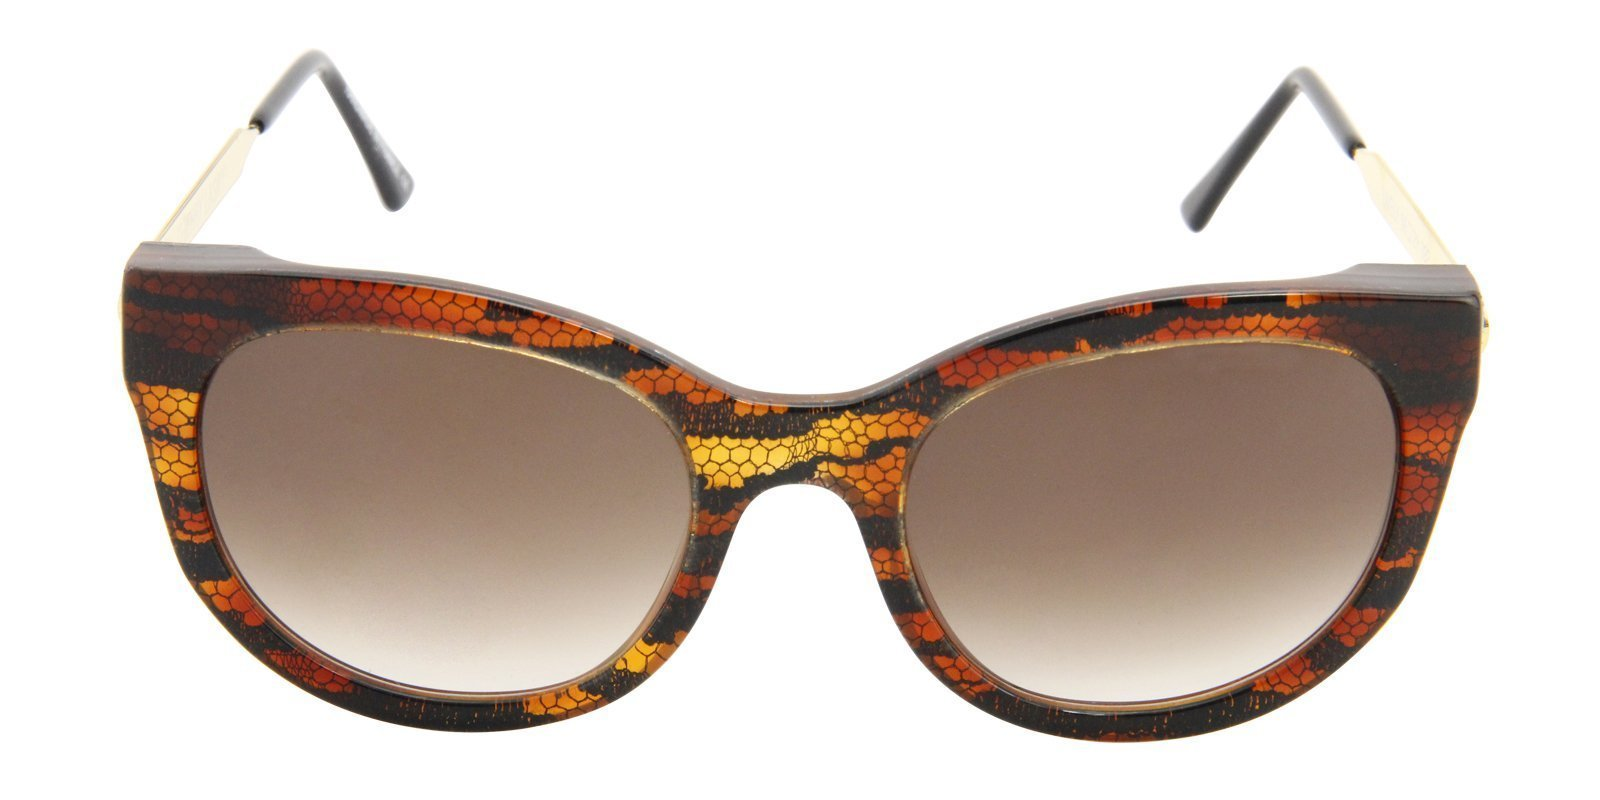 Thierry Lasry Tagged